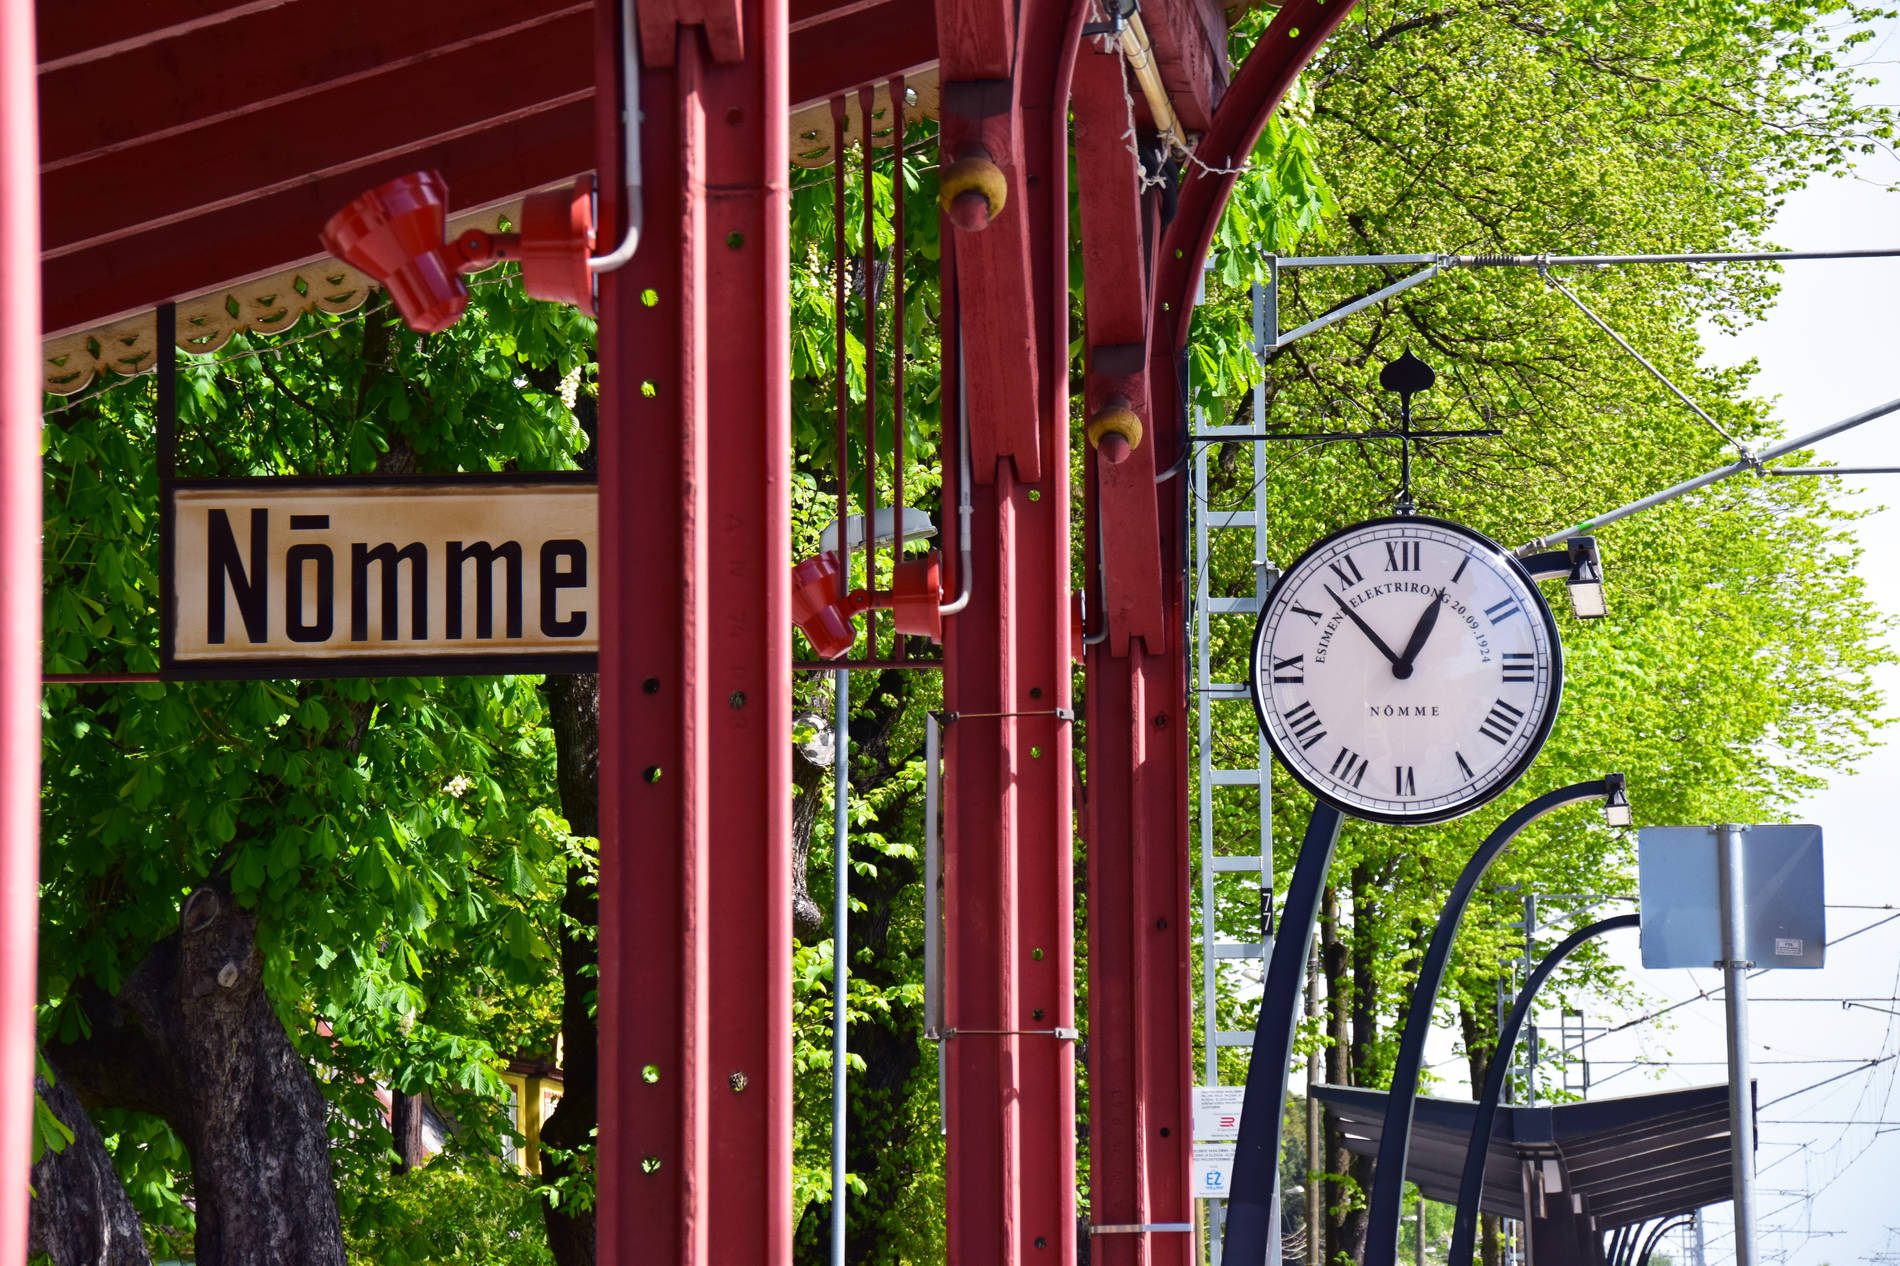 Detail of Nõmme rain station, showing a clock and the sign of Nõmme.